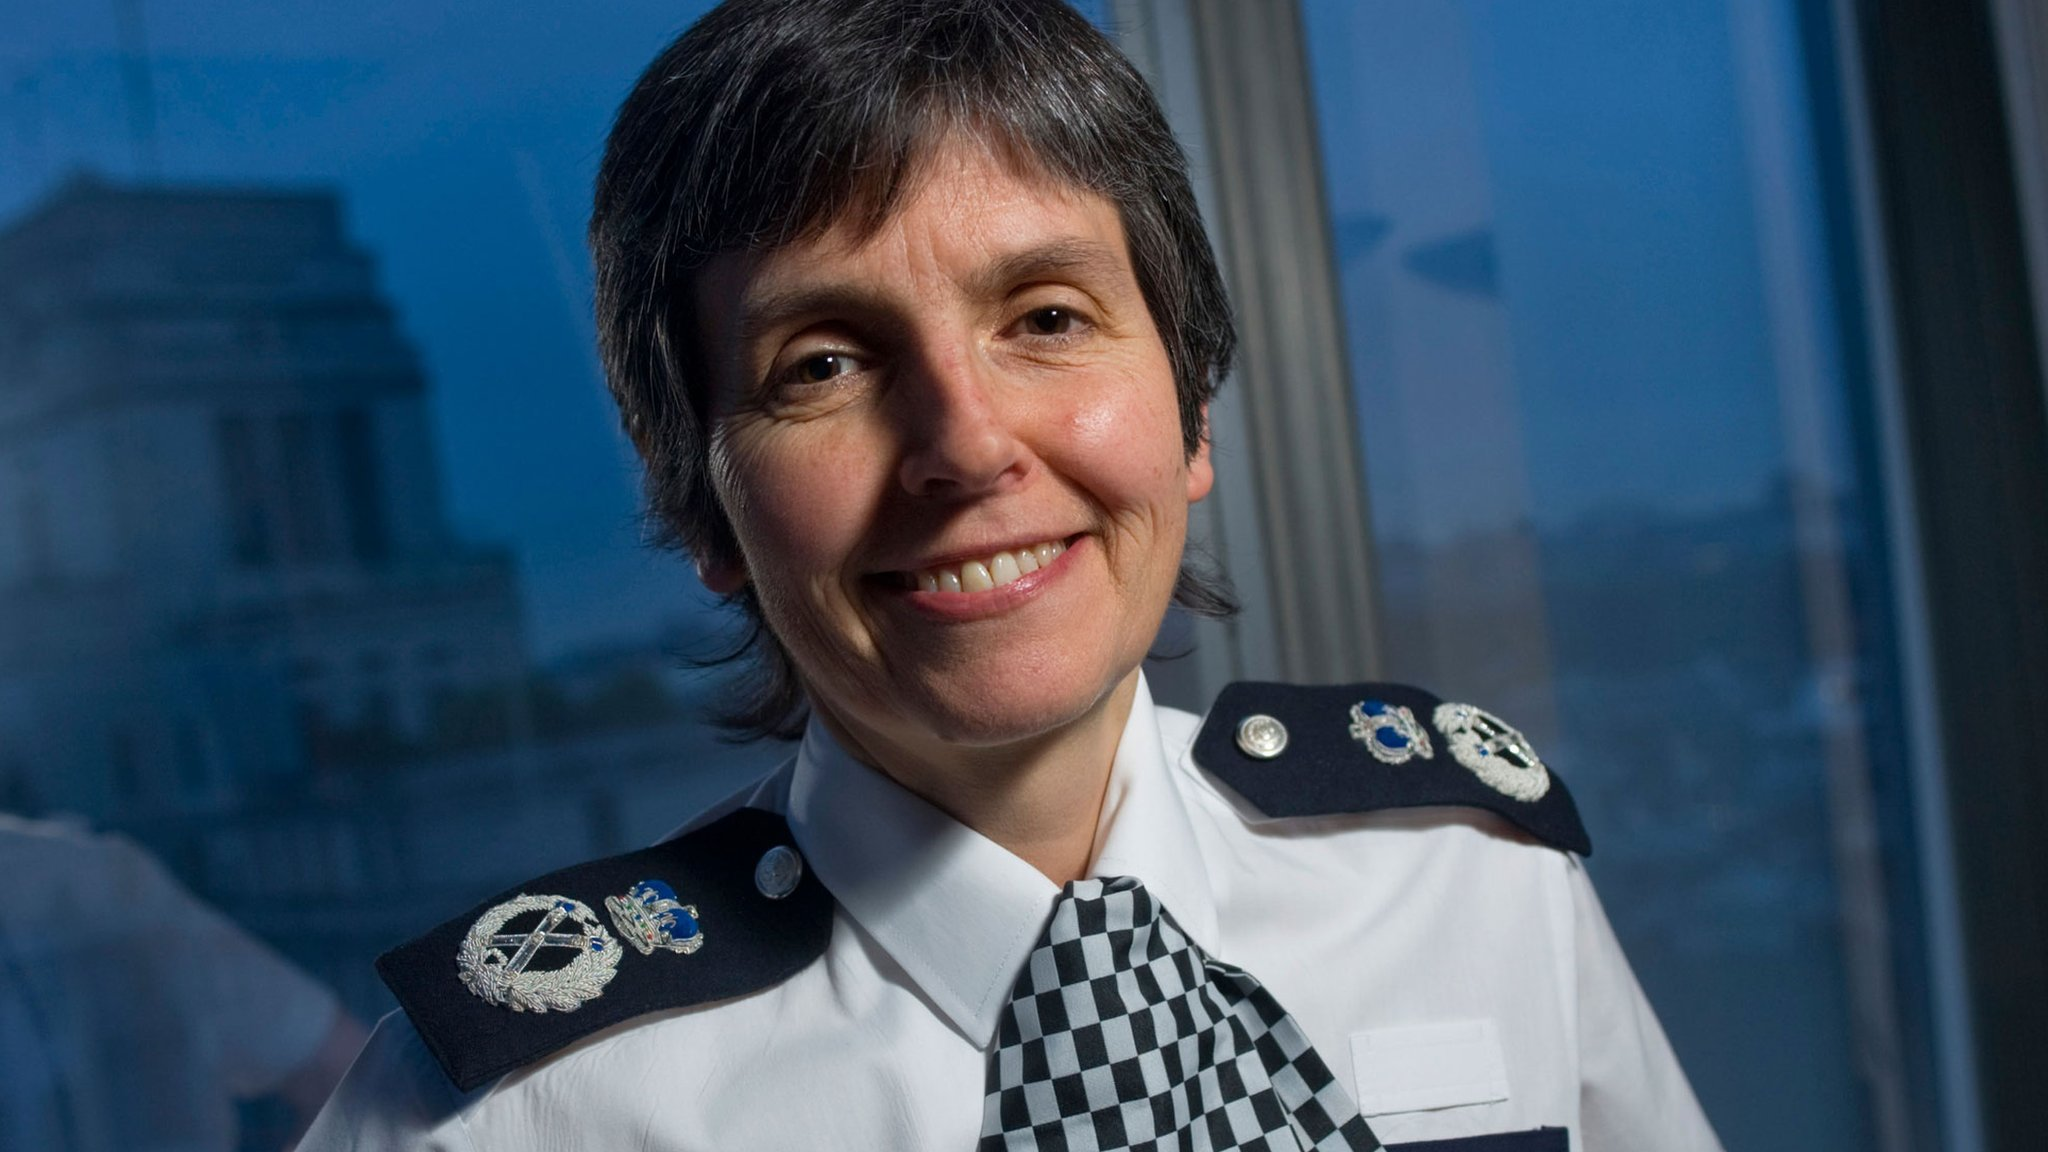 Cressida Dick appointed as first female Met Police chief